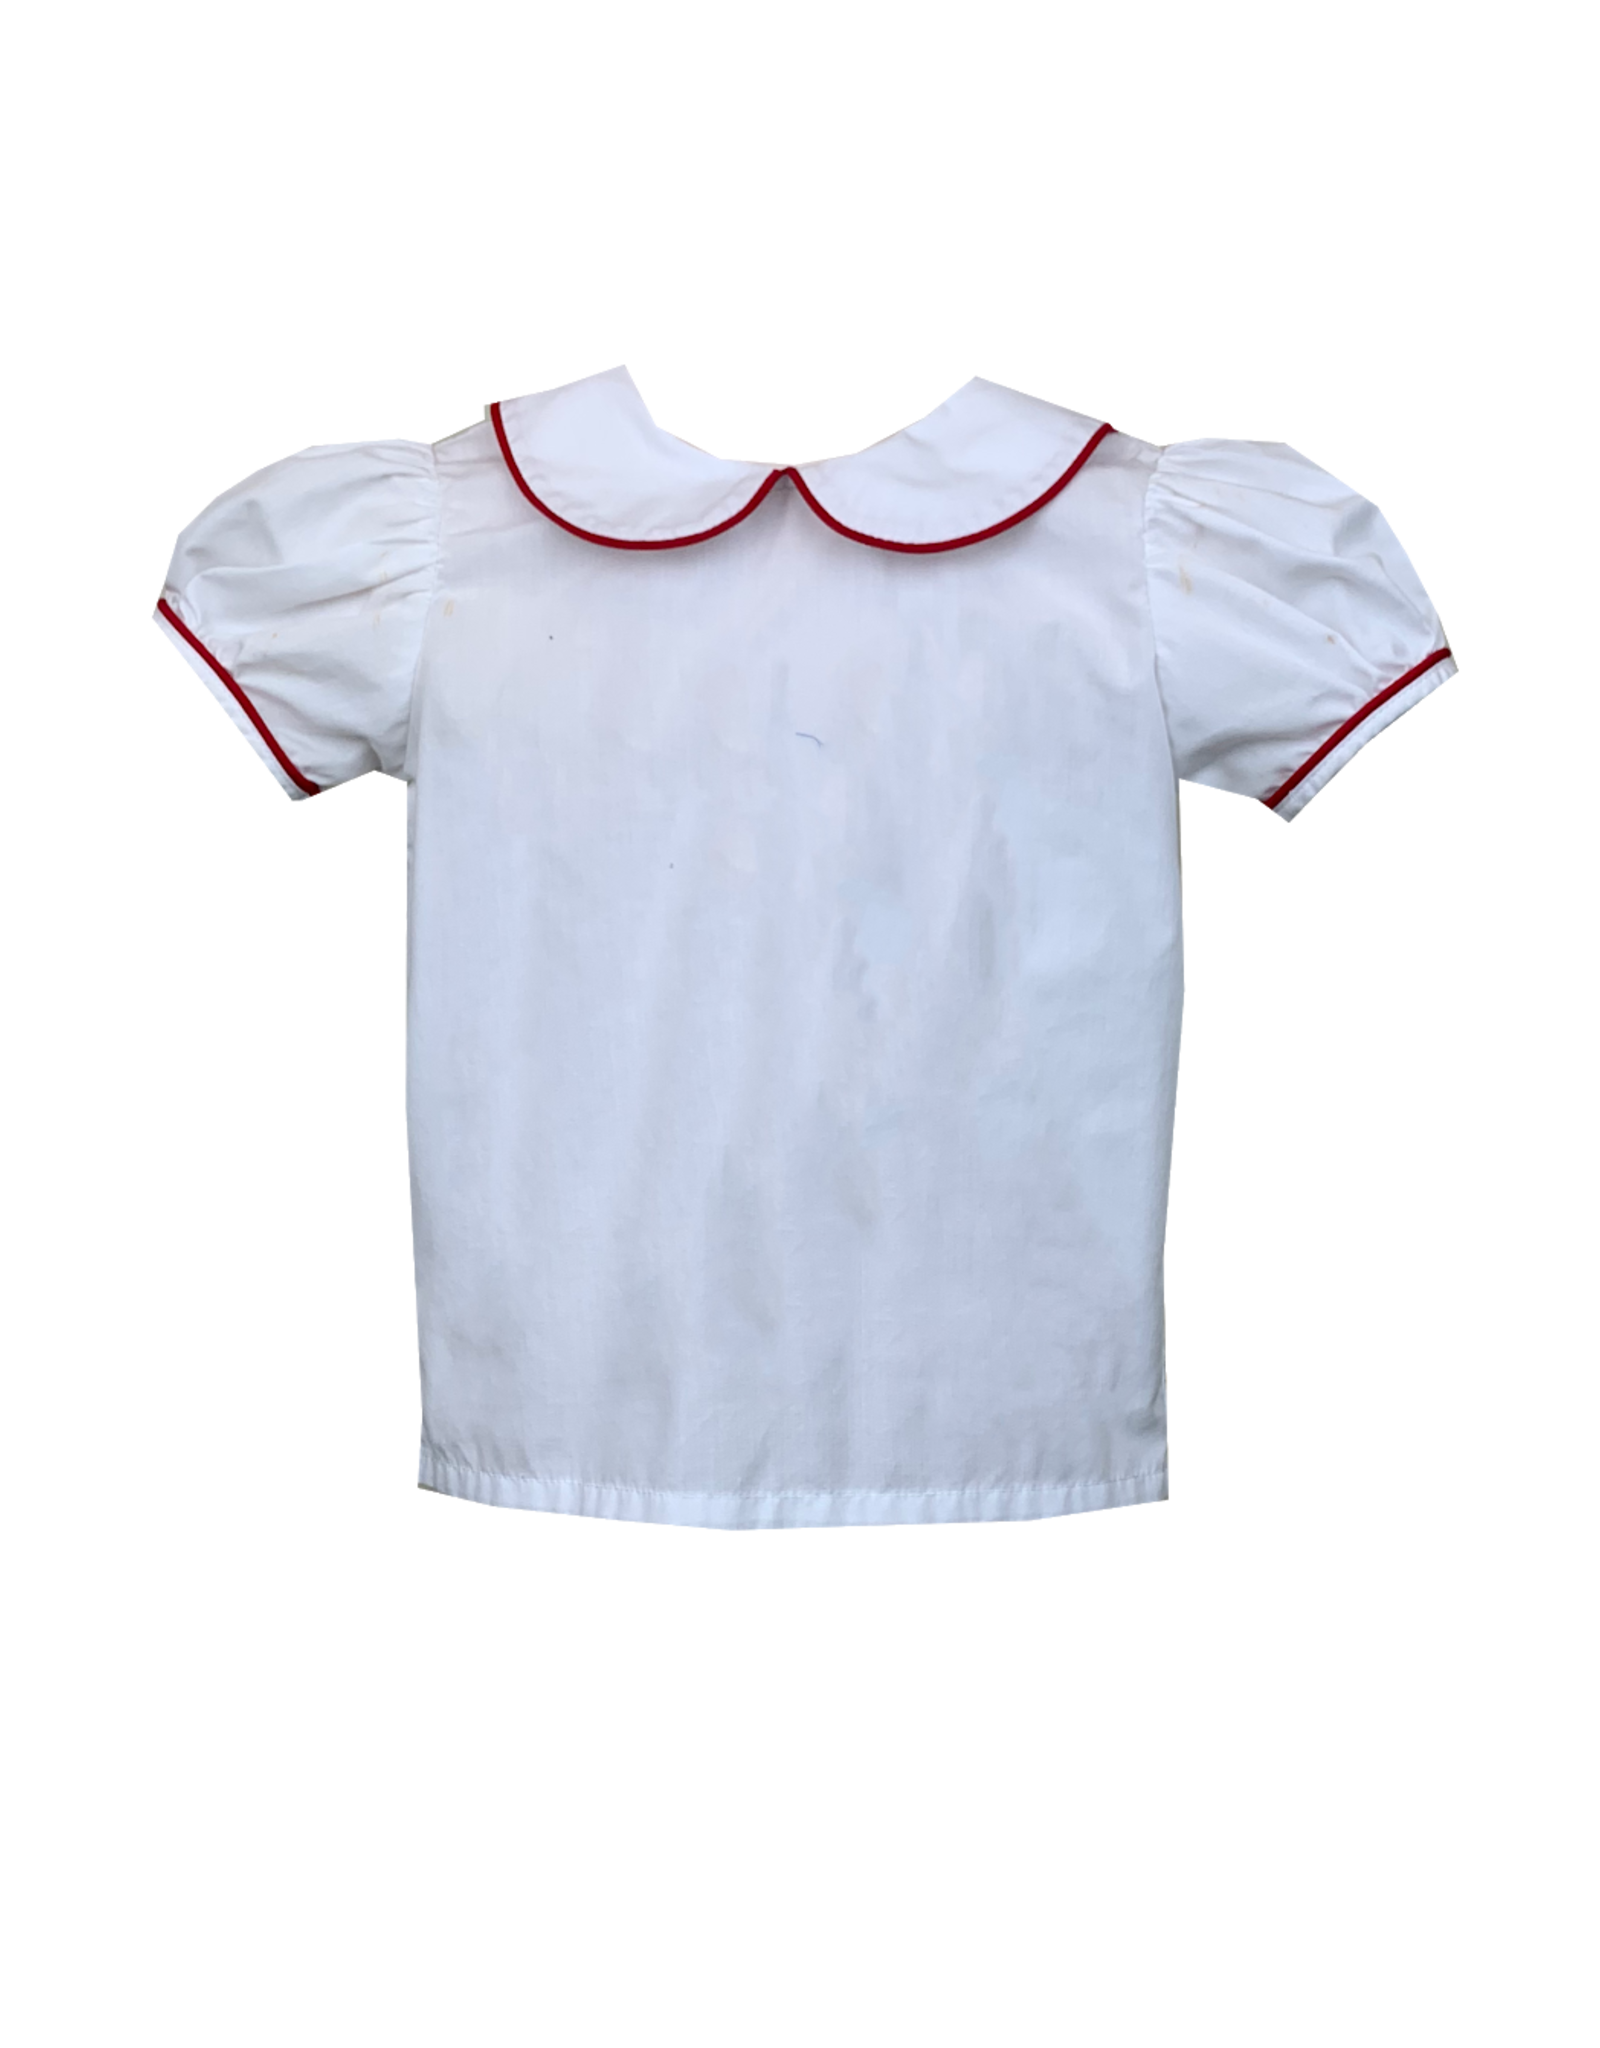 LullabySet Better Together Shirt White With Red Piping